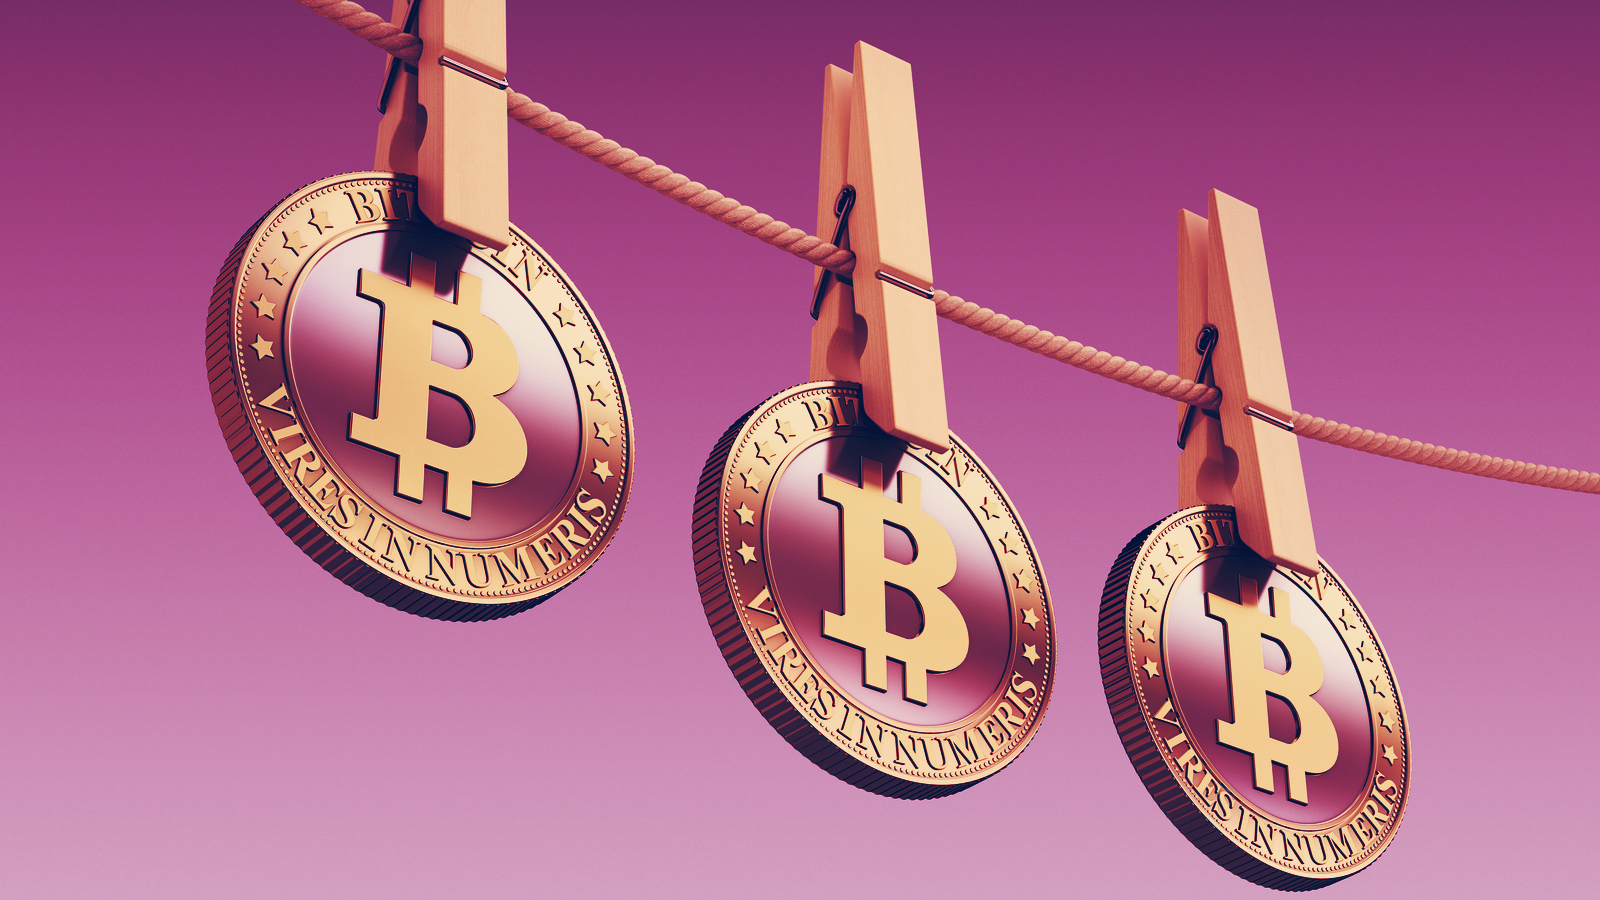 Blanqueo de bitcoins price online election betting india